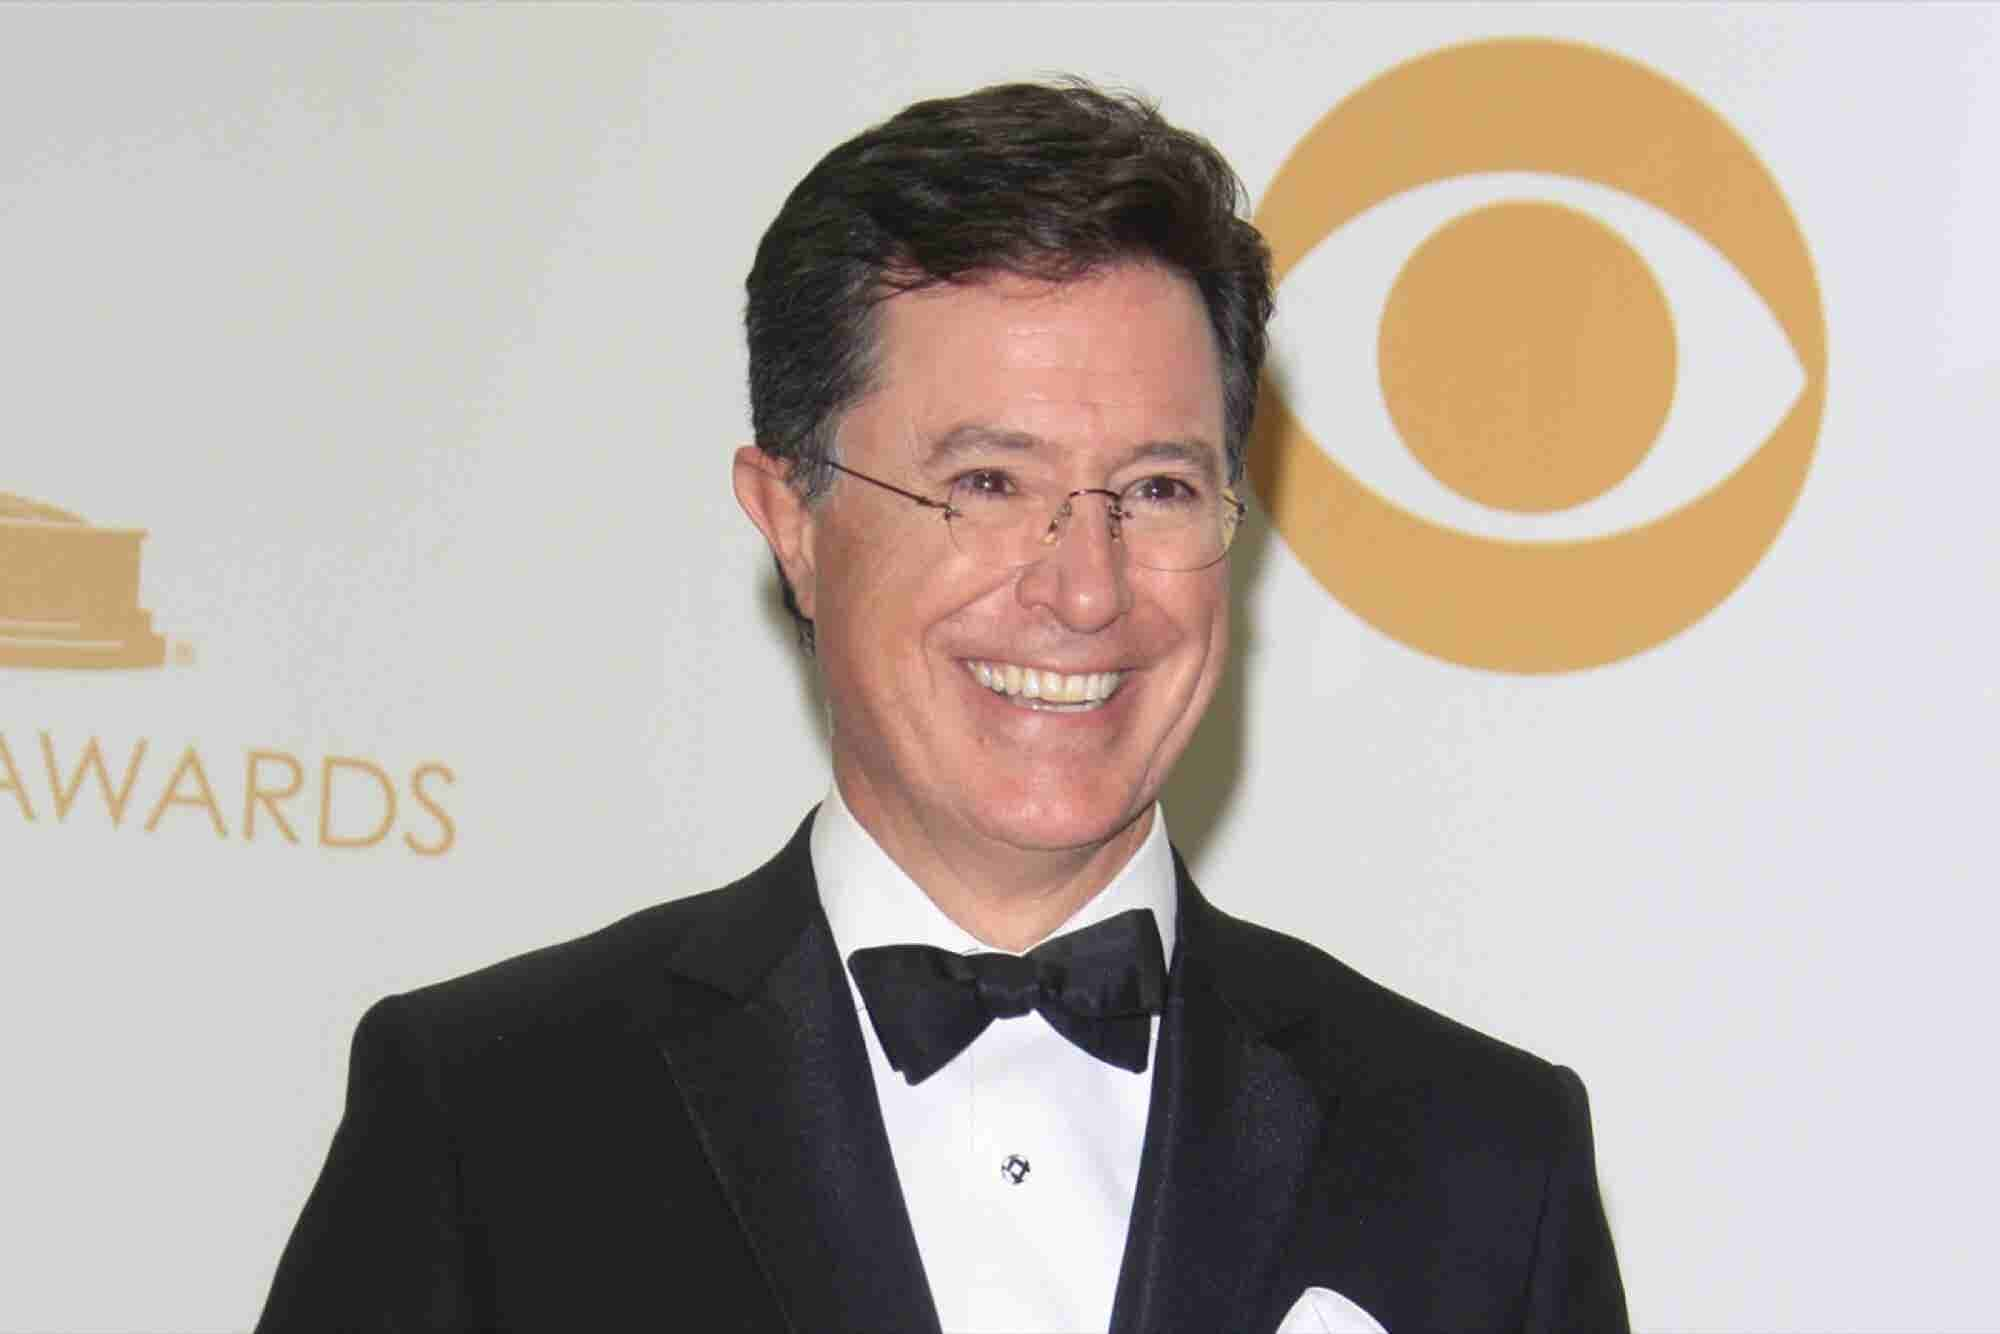 Stephen Colbert to Interview Elon Musk, Travis Kalanick During First Week of 'Late Show'